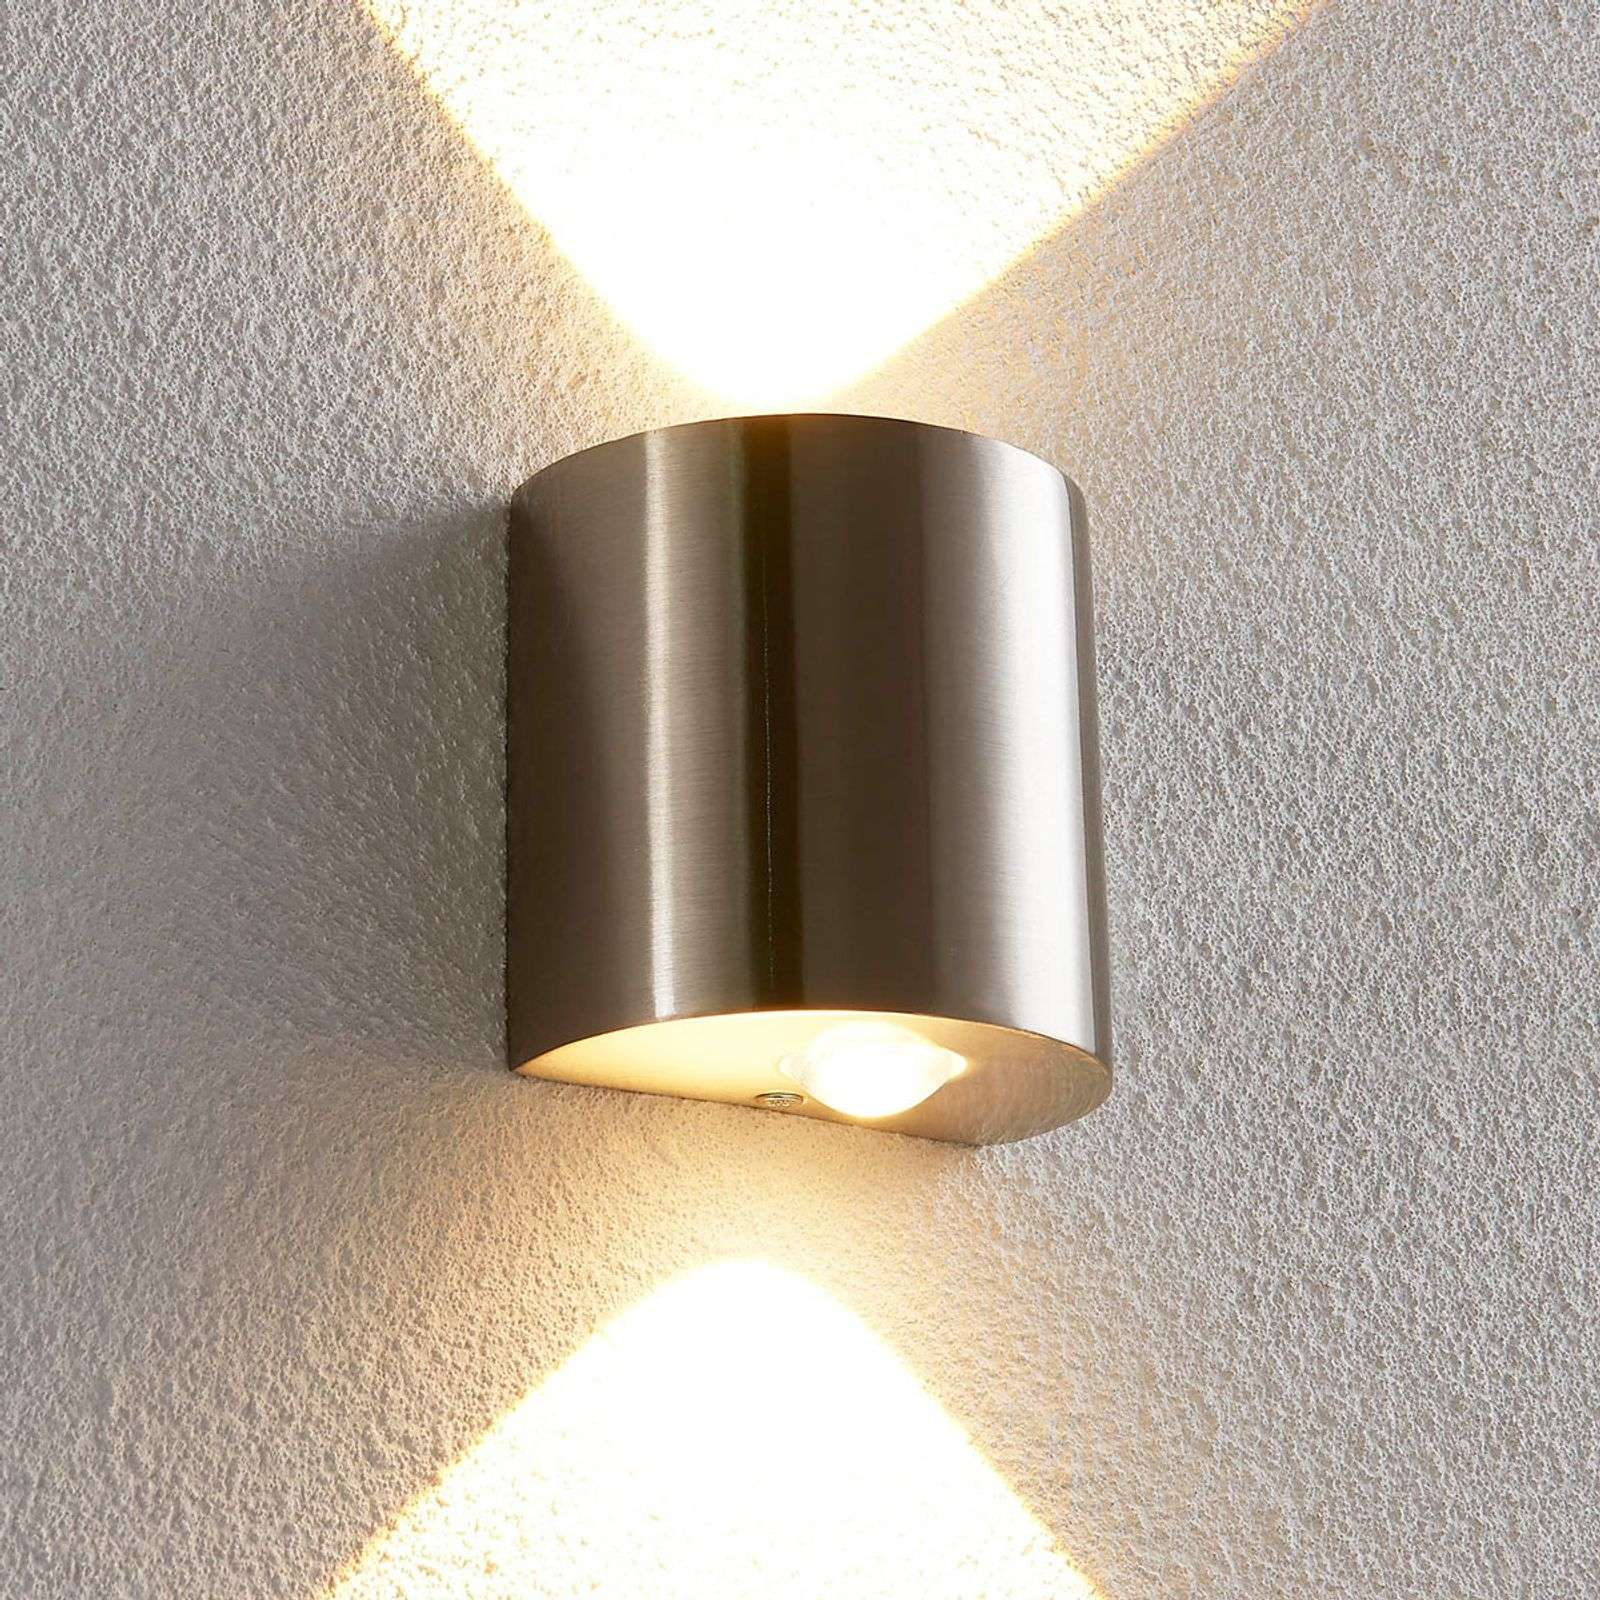 Applique LED en demi-sphère Lareen, nickel satiné